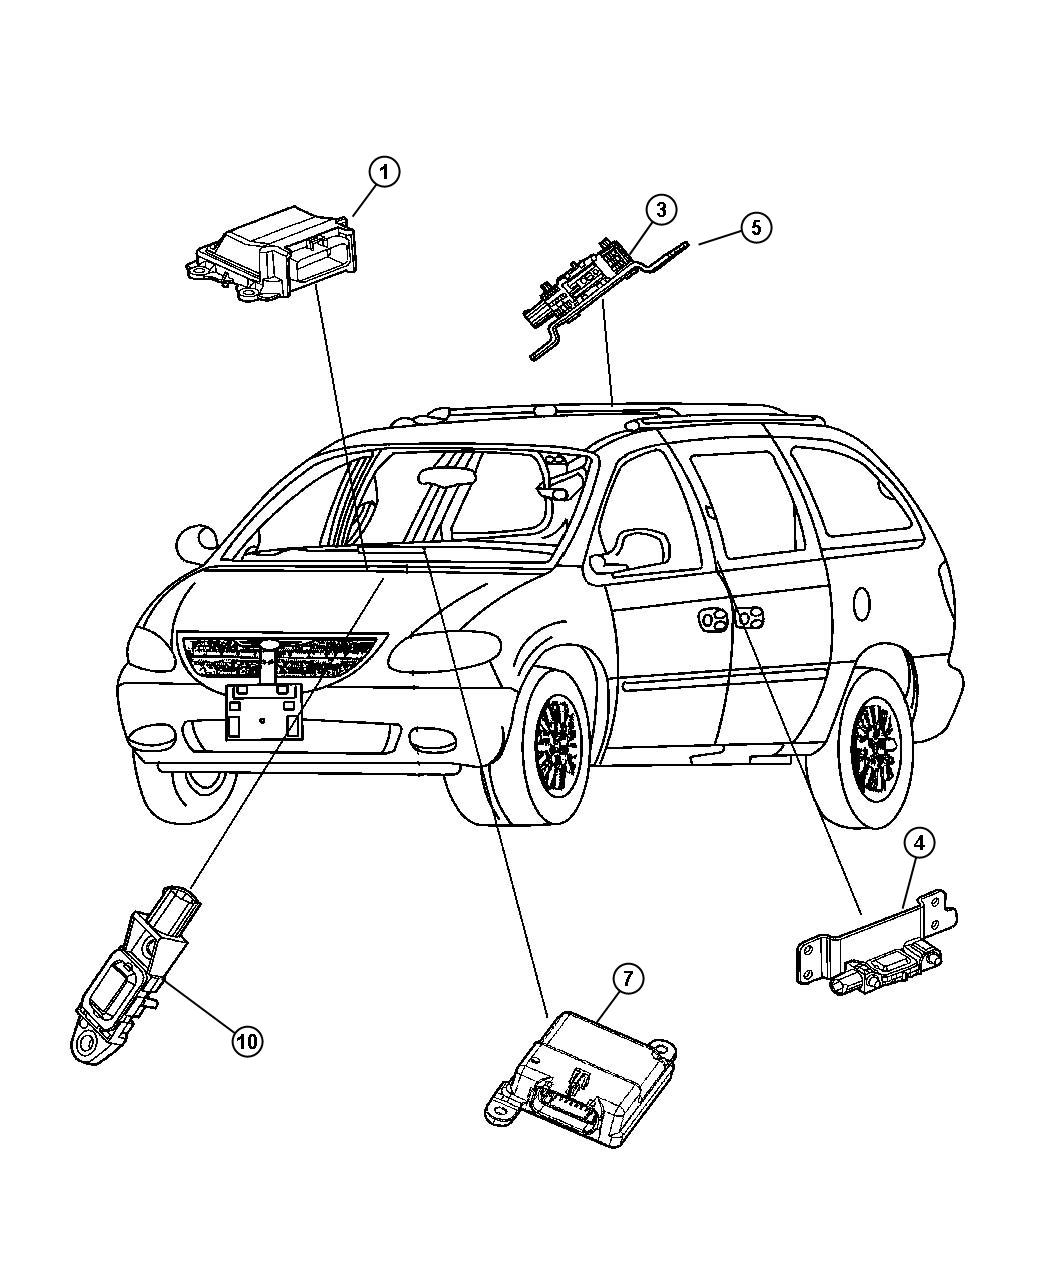 wiring diagram for 2002 chrysler town and country wiring dodge airbag sensor location